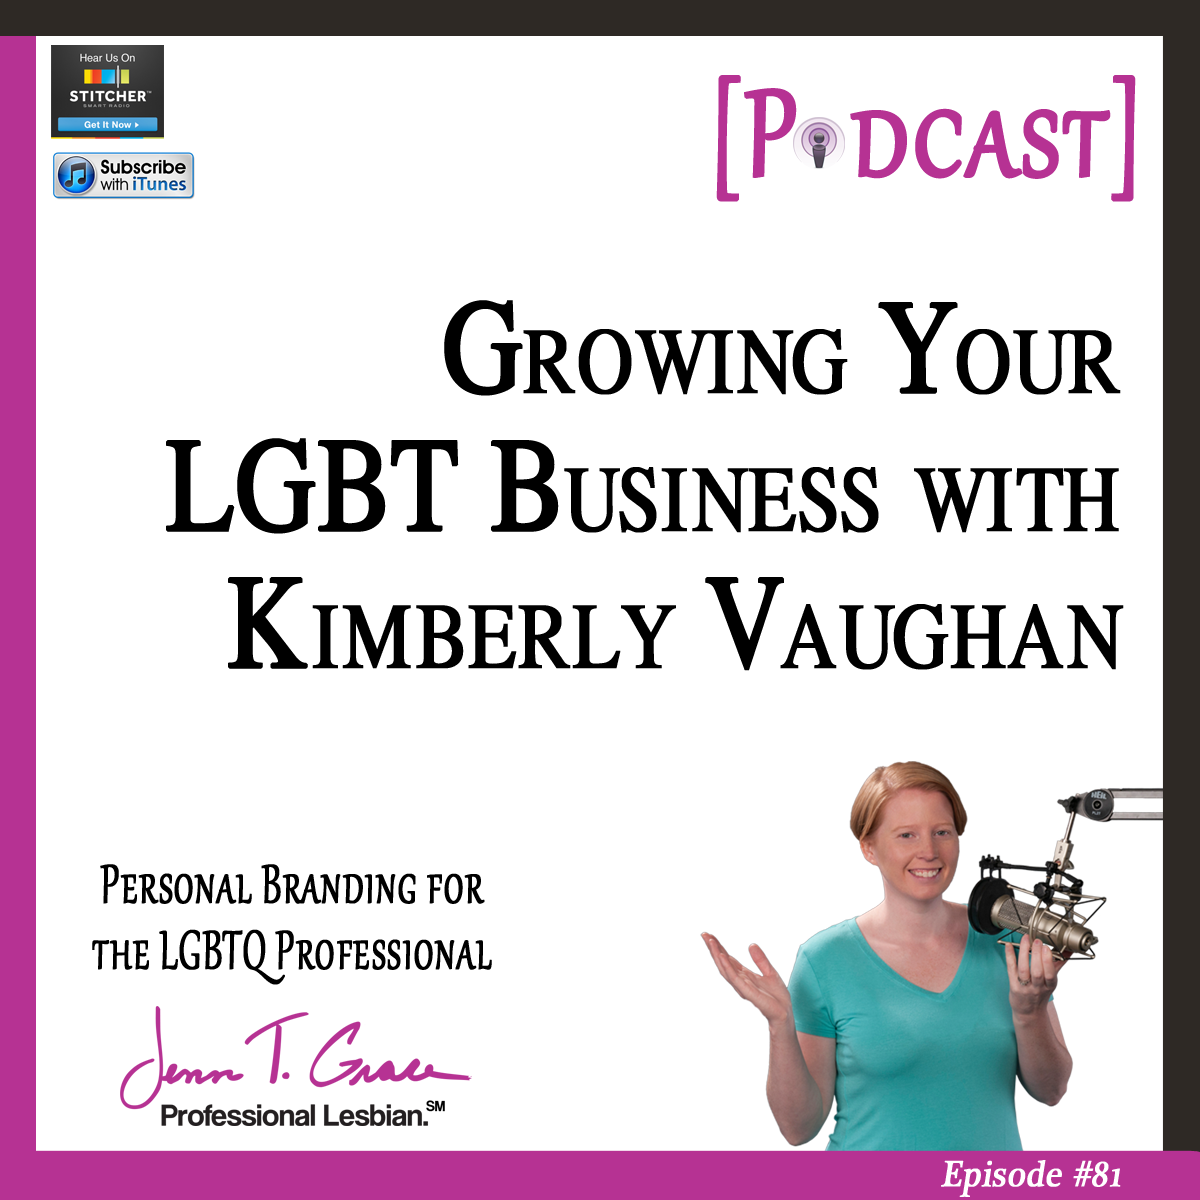 Personal Branding for the LGBTQ Professional - #81: Growing Your LGBT Business with Kimberly Vaughan [Podcast]